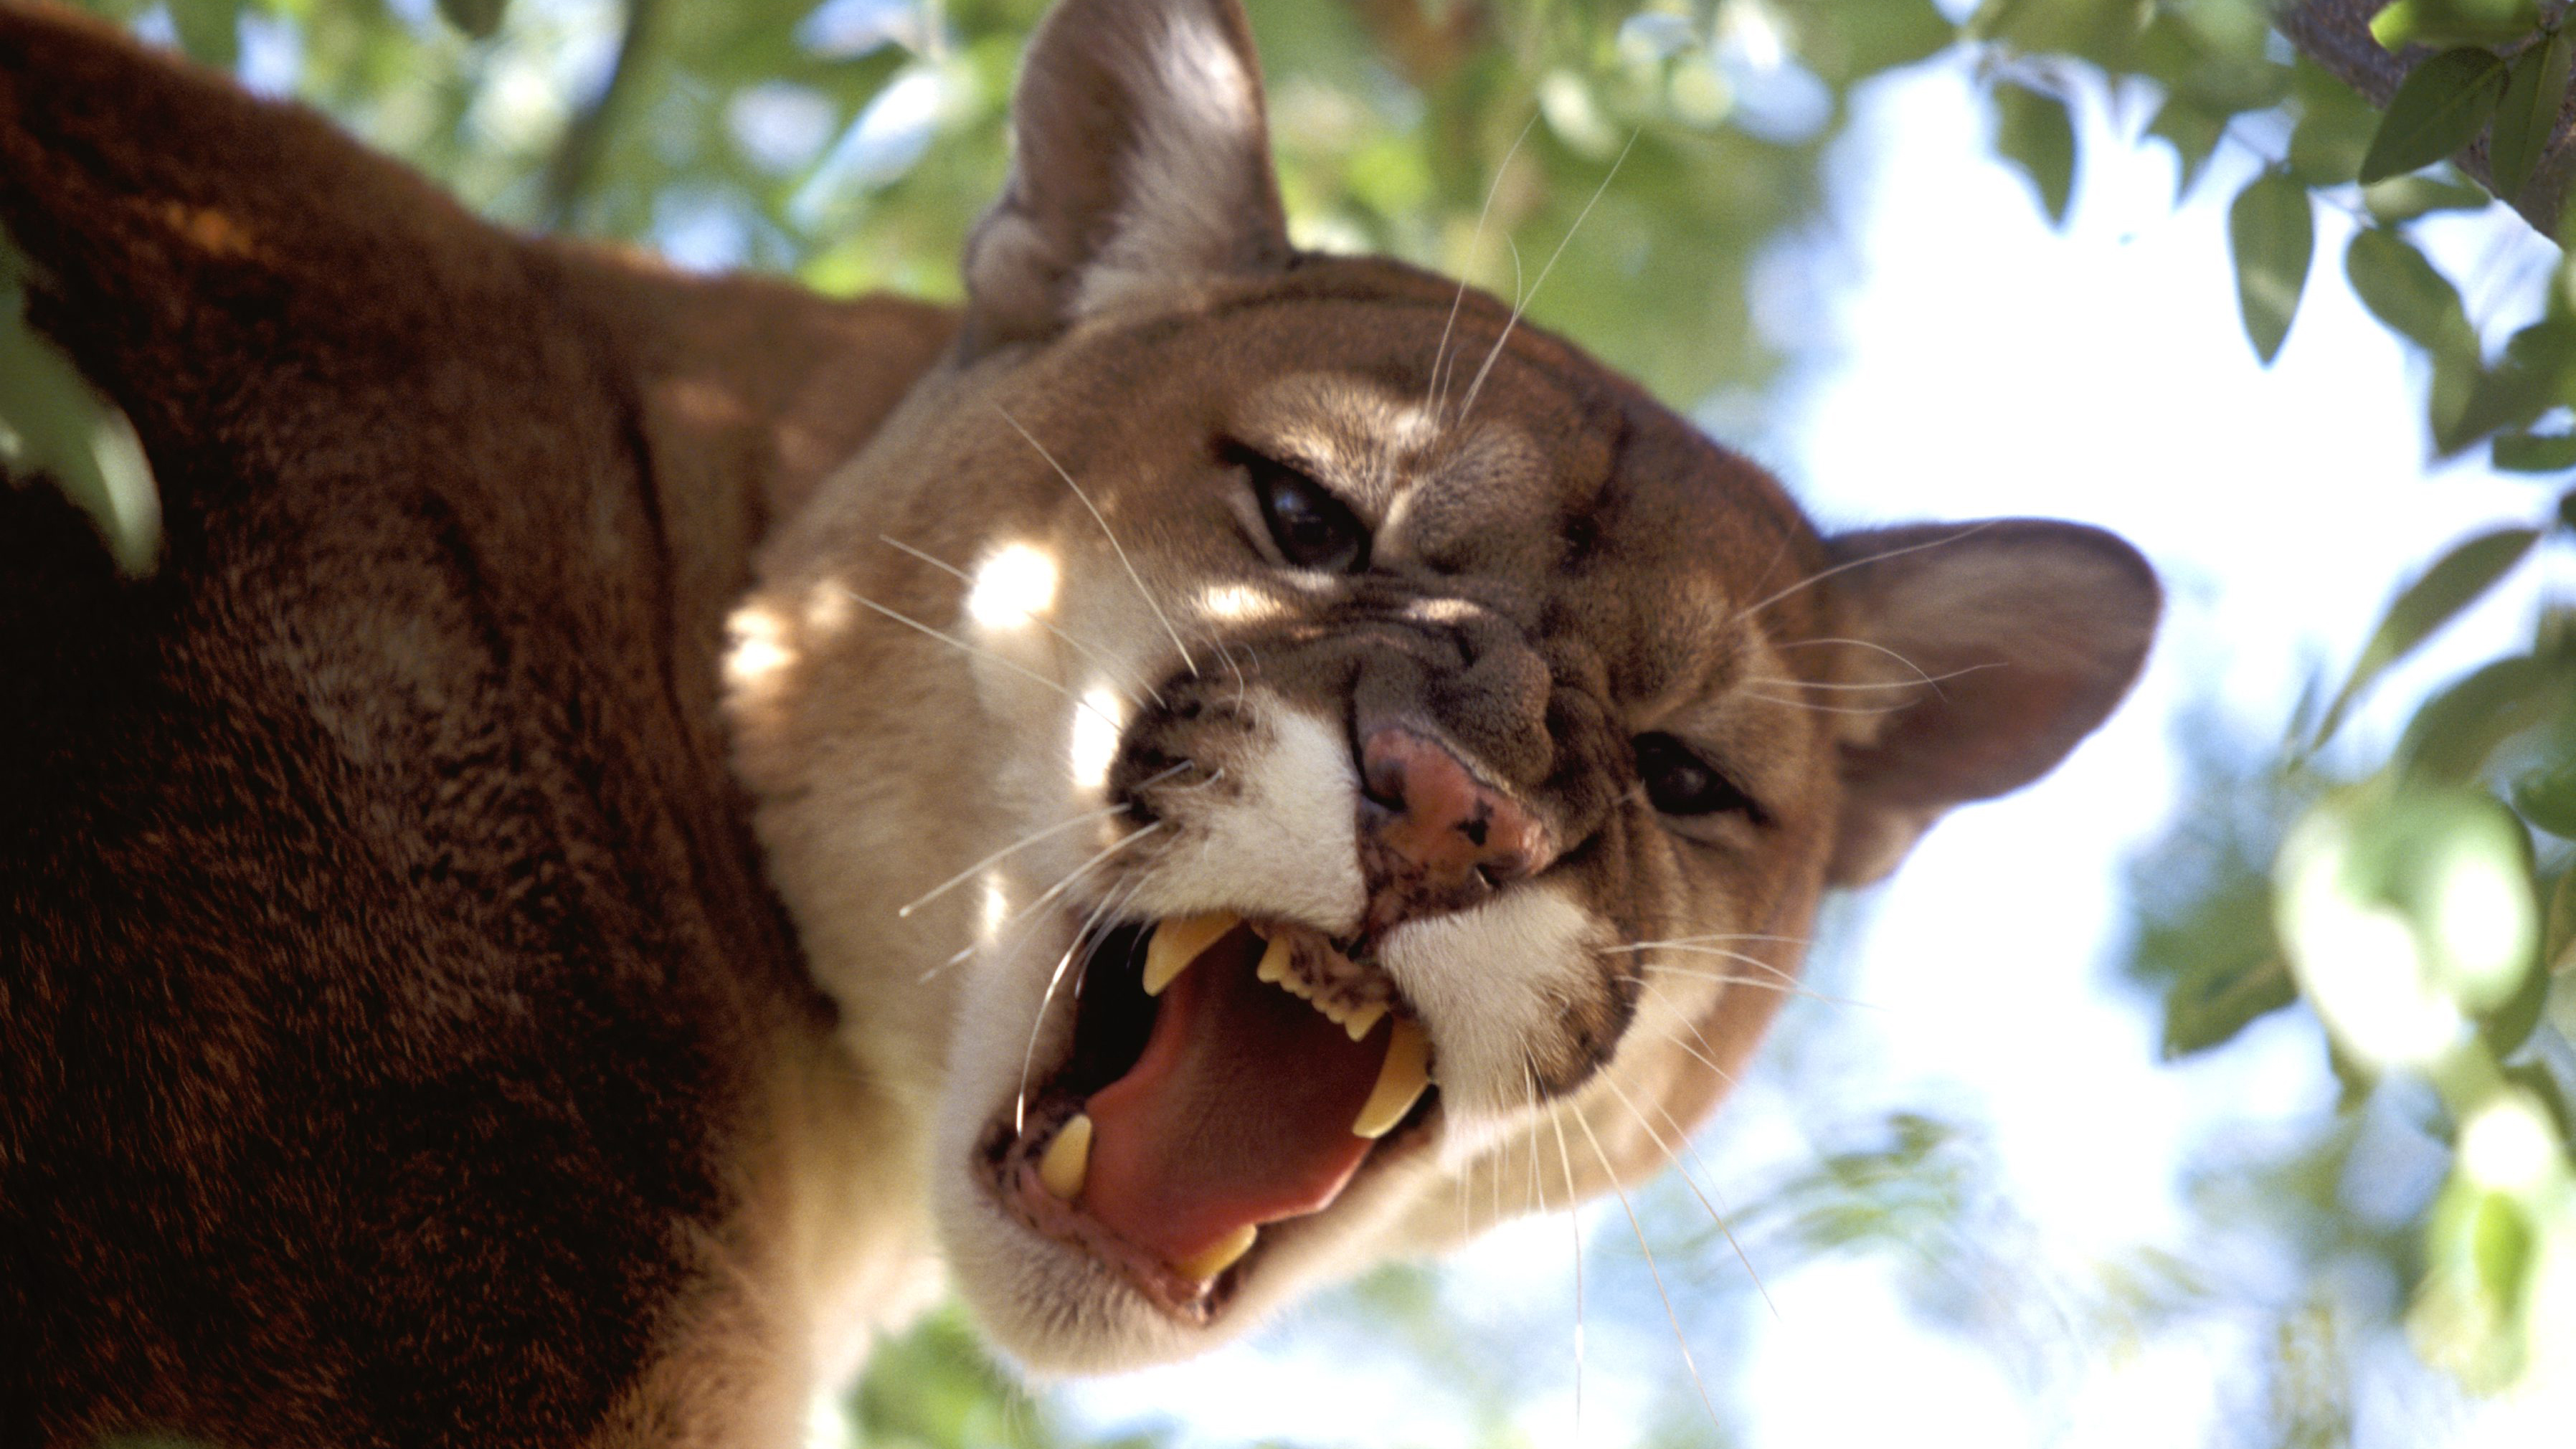 645fd84e2 Colorado runner kills mountain lion with bare hands after attack | SI.com